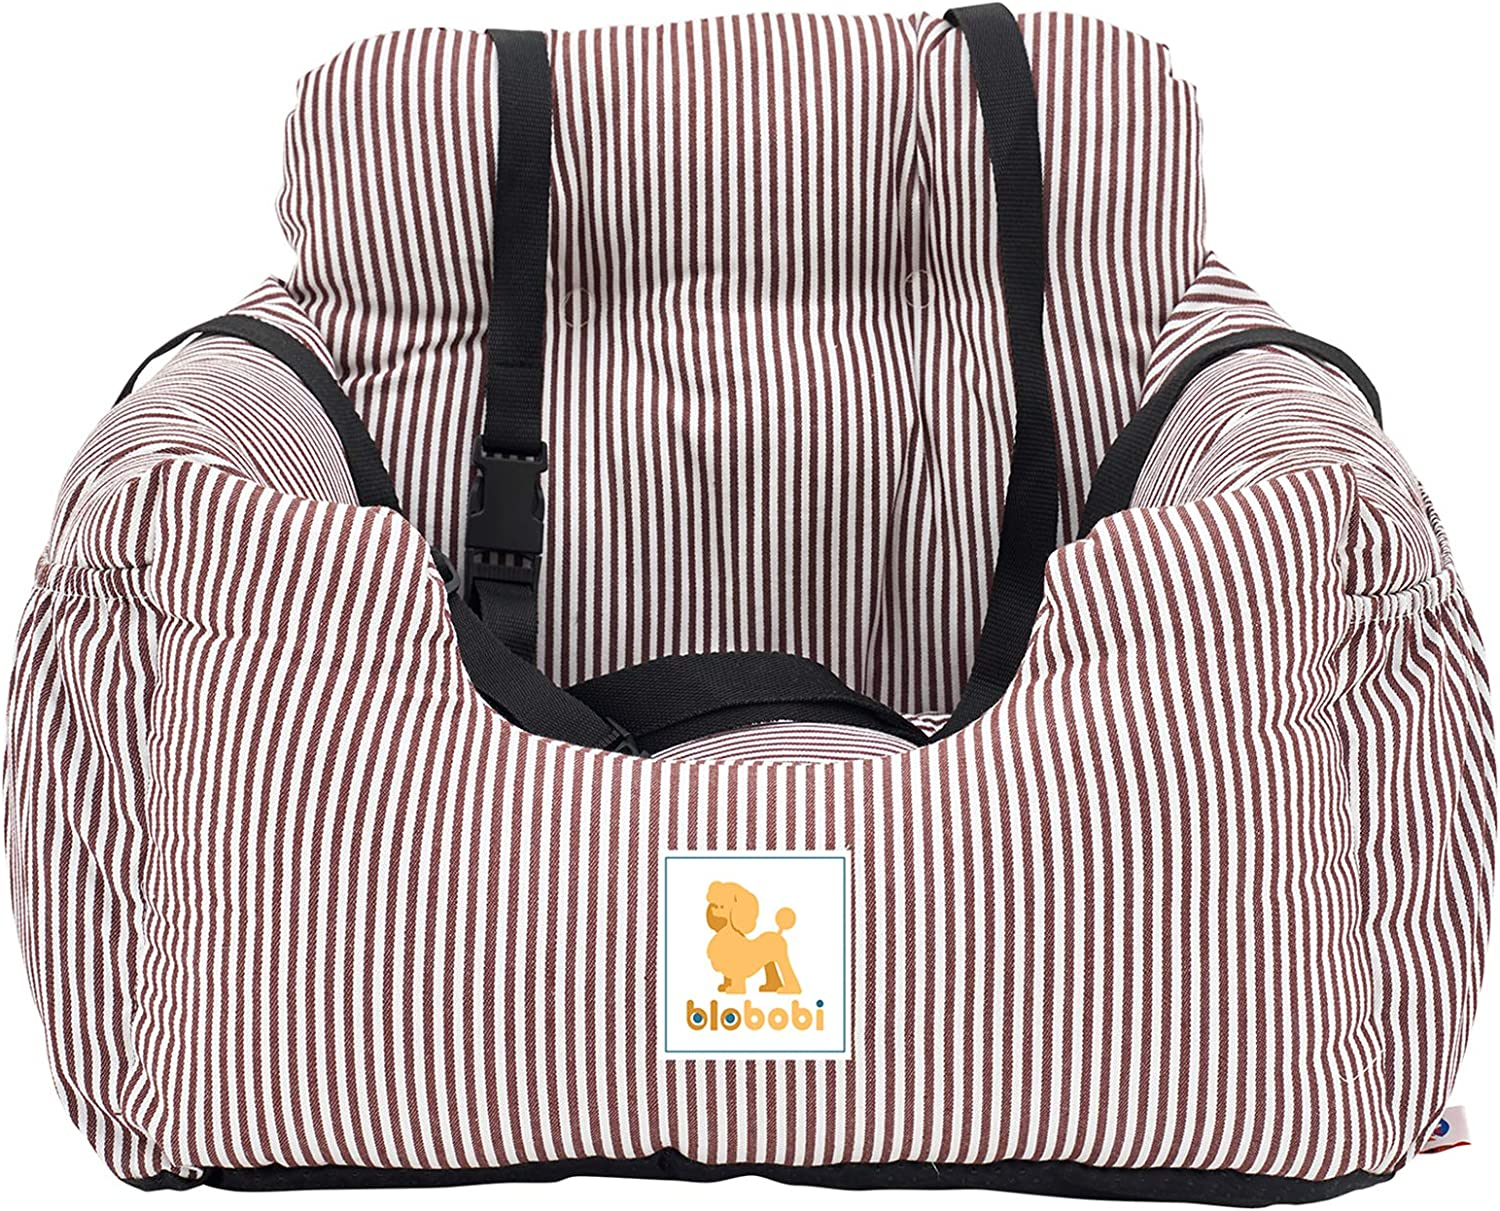 Blobobi Dog Inexpensive Car Seat for Medium wi Cats or Booster Dogs Max 64% OFF